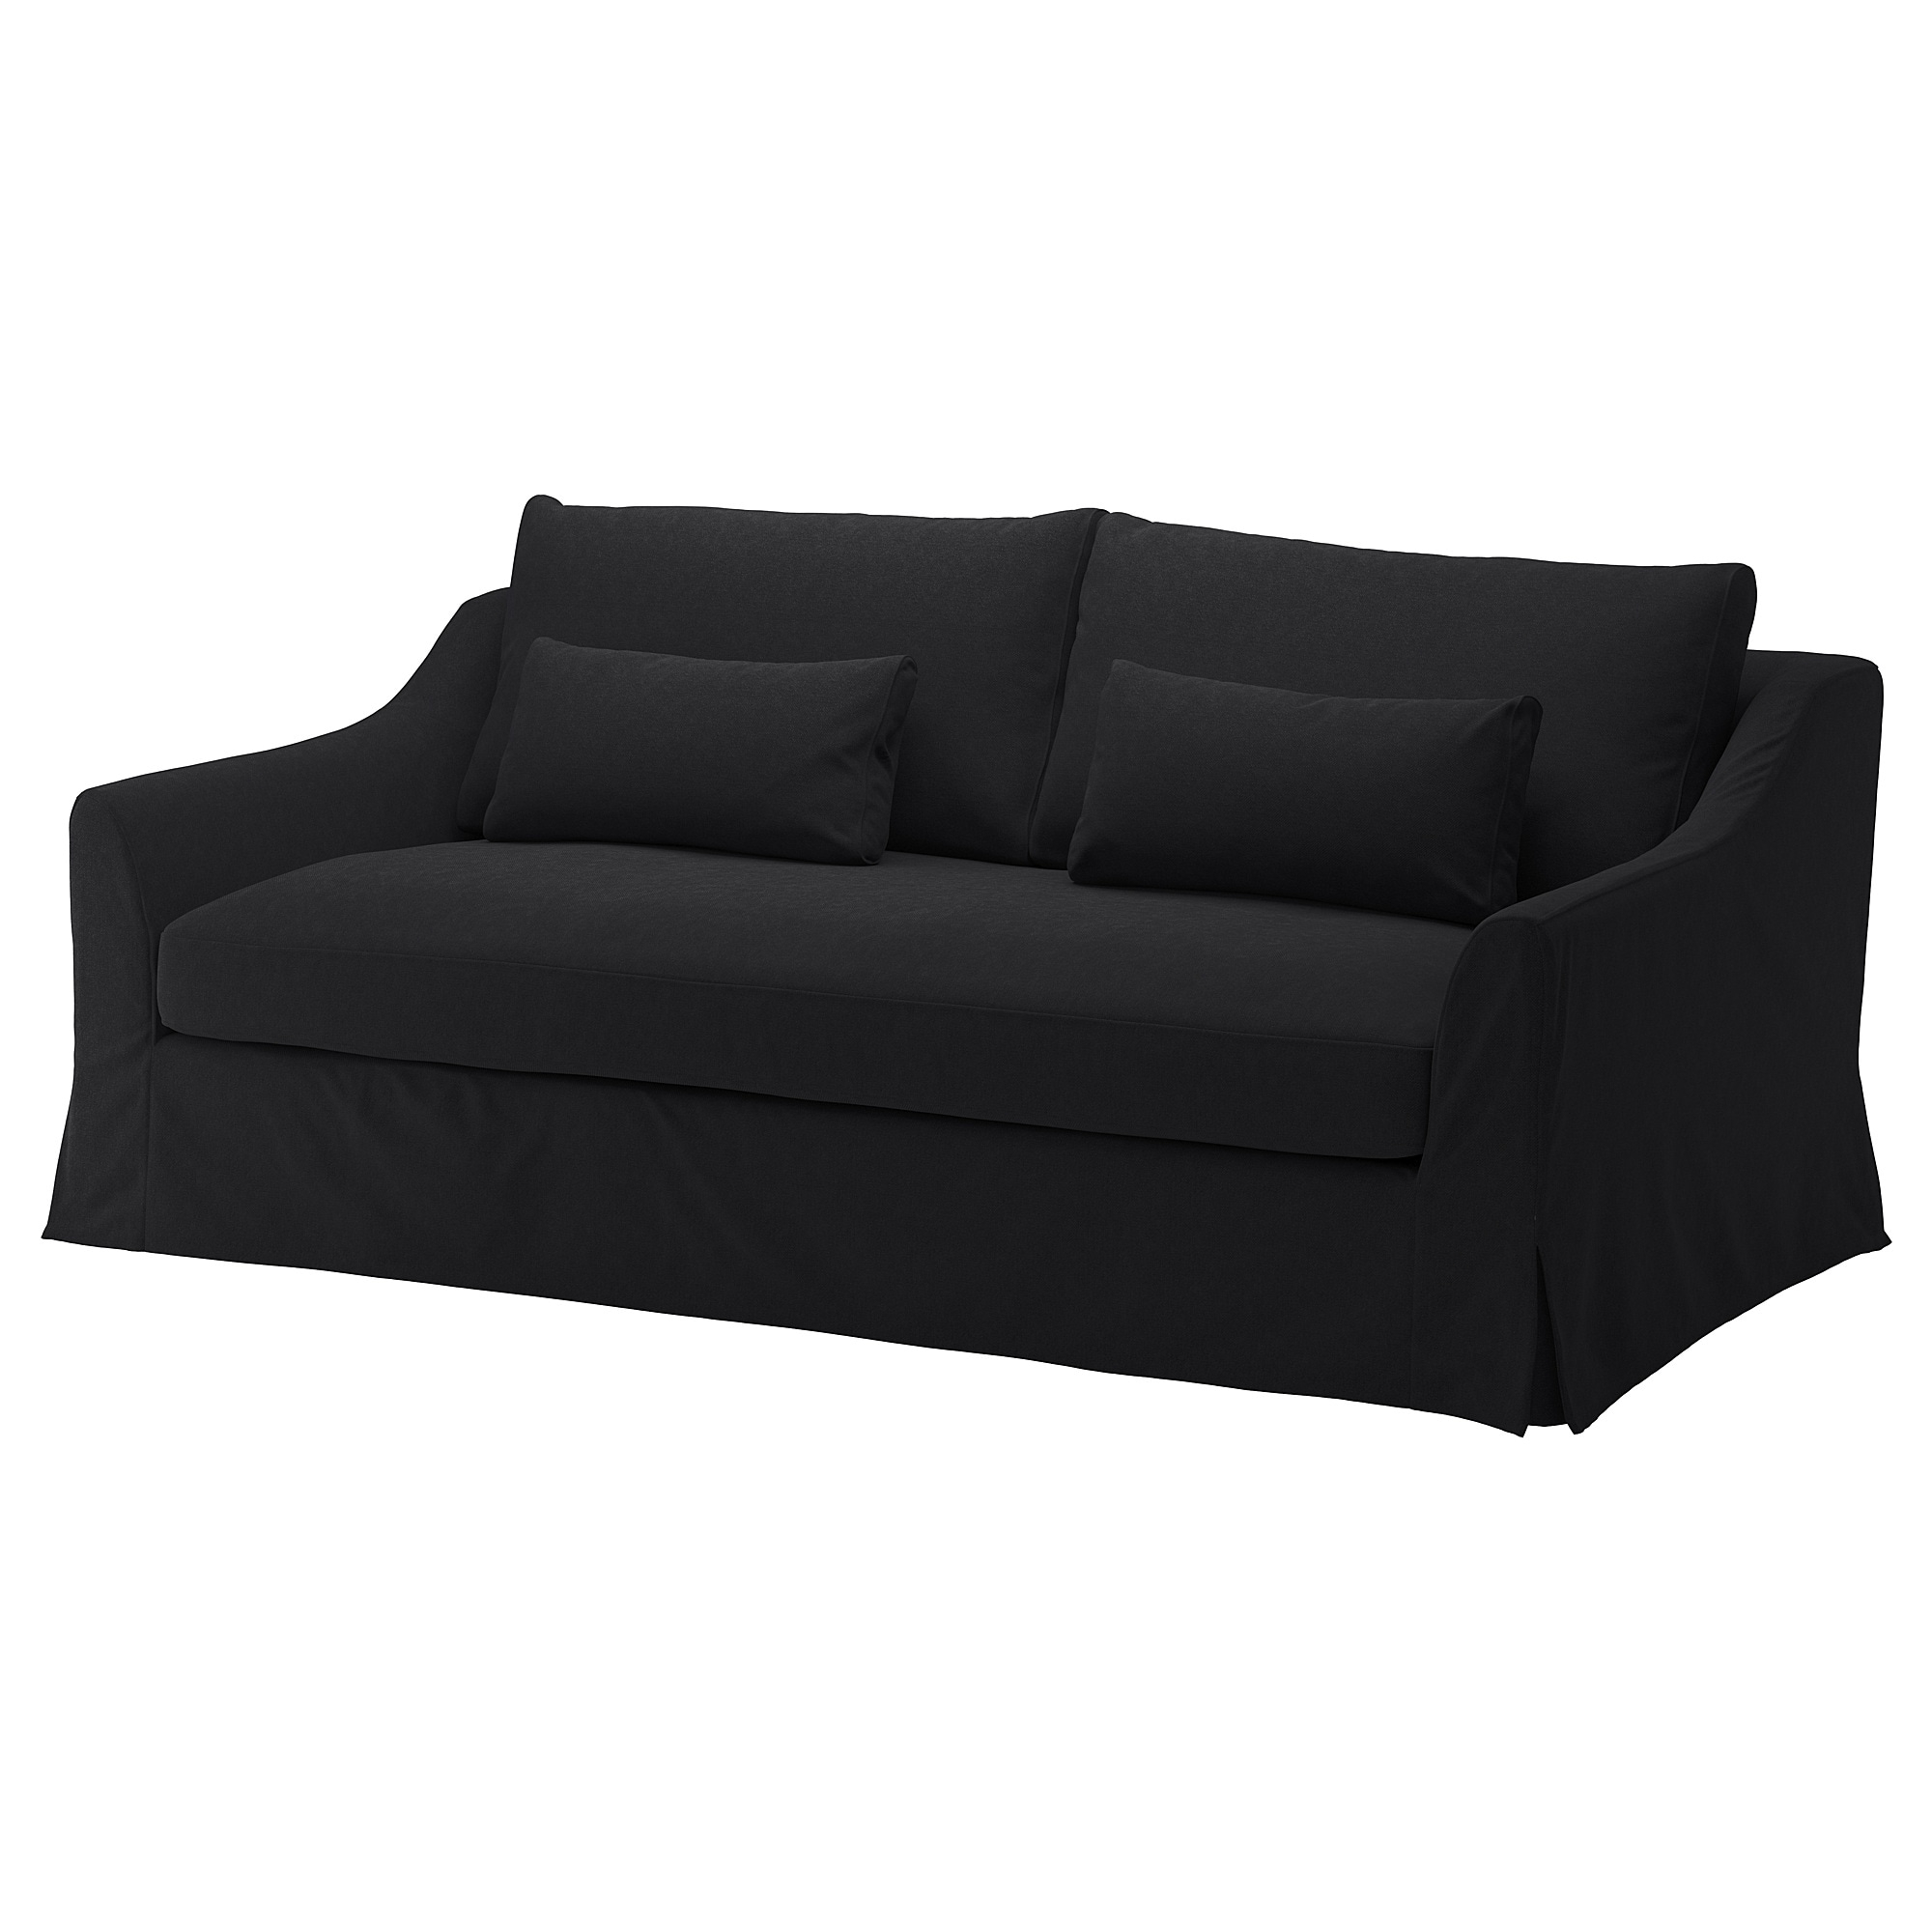 Sofas – Settees, Couches & More | Ikea Within London Dark Grey Sofa Chairs (View 11 of 25)